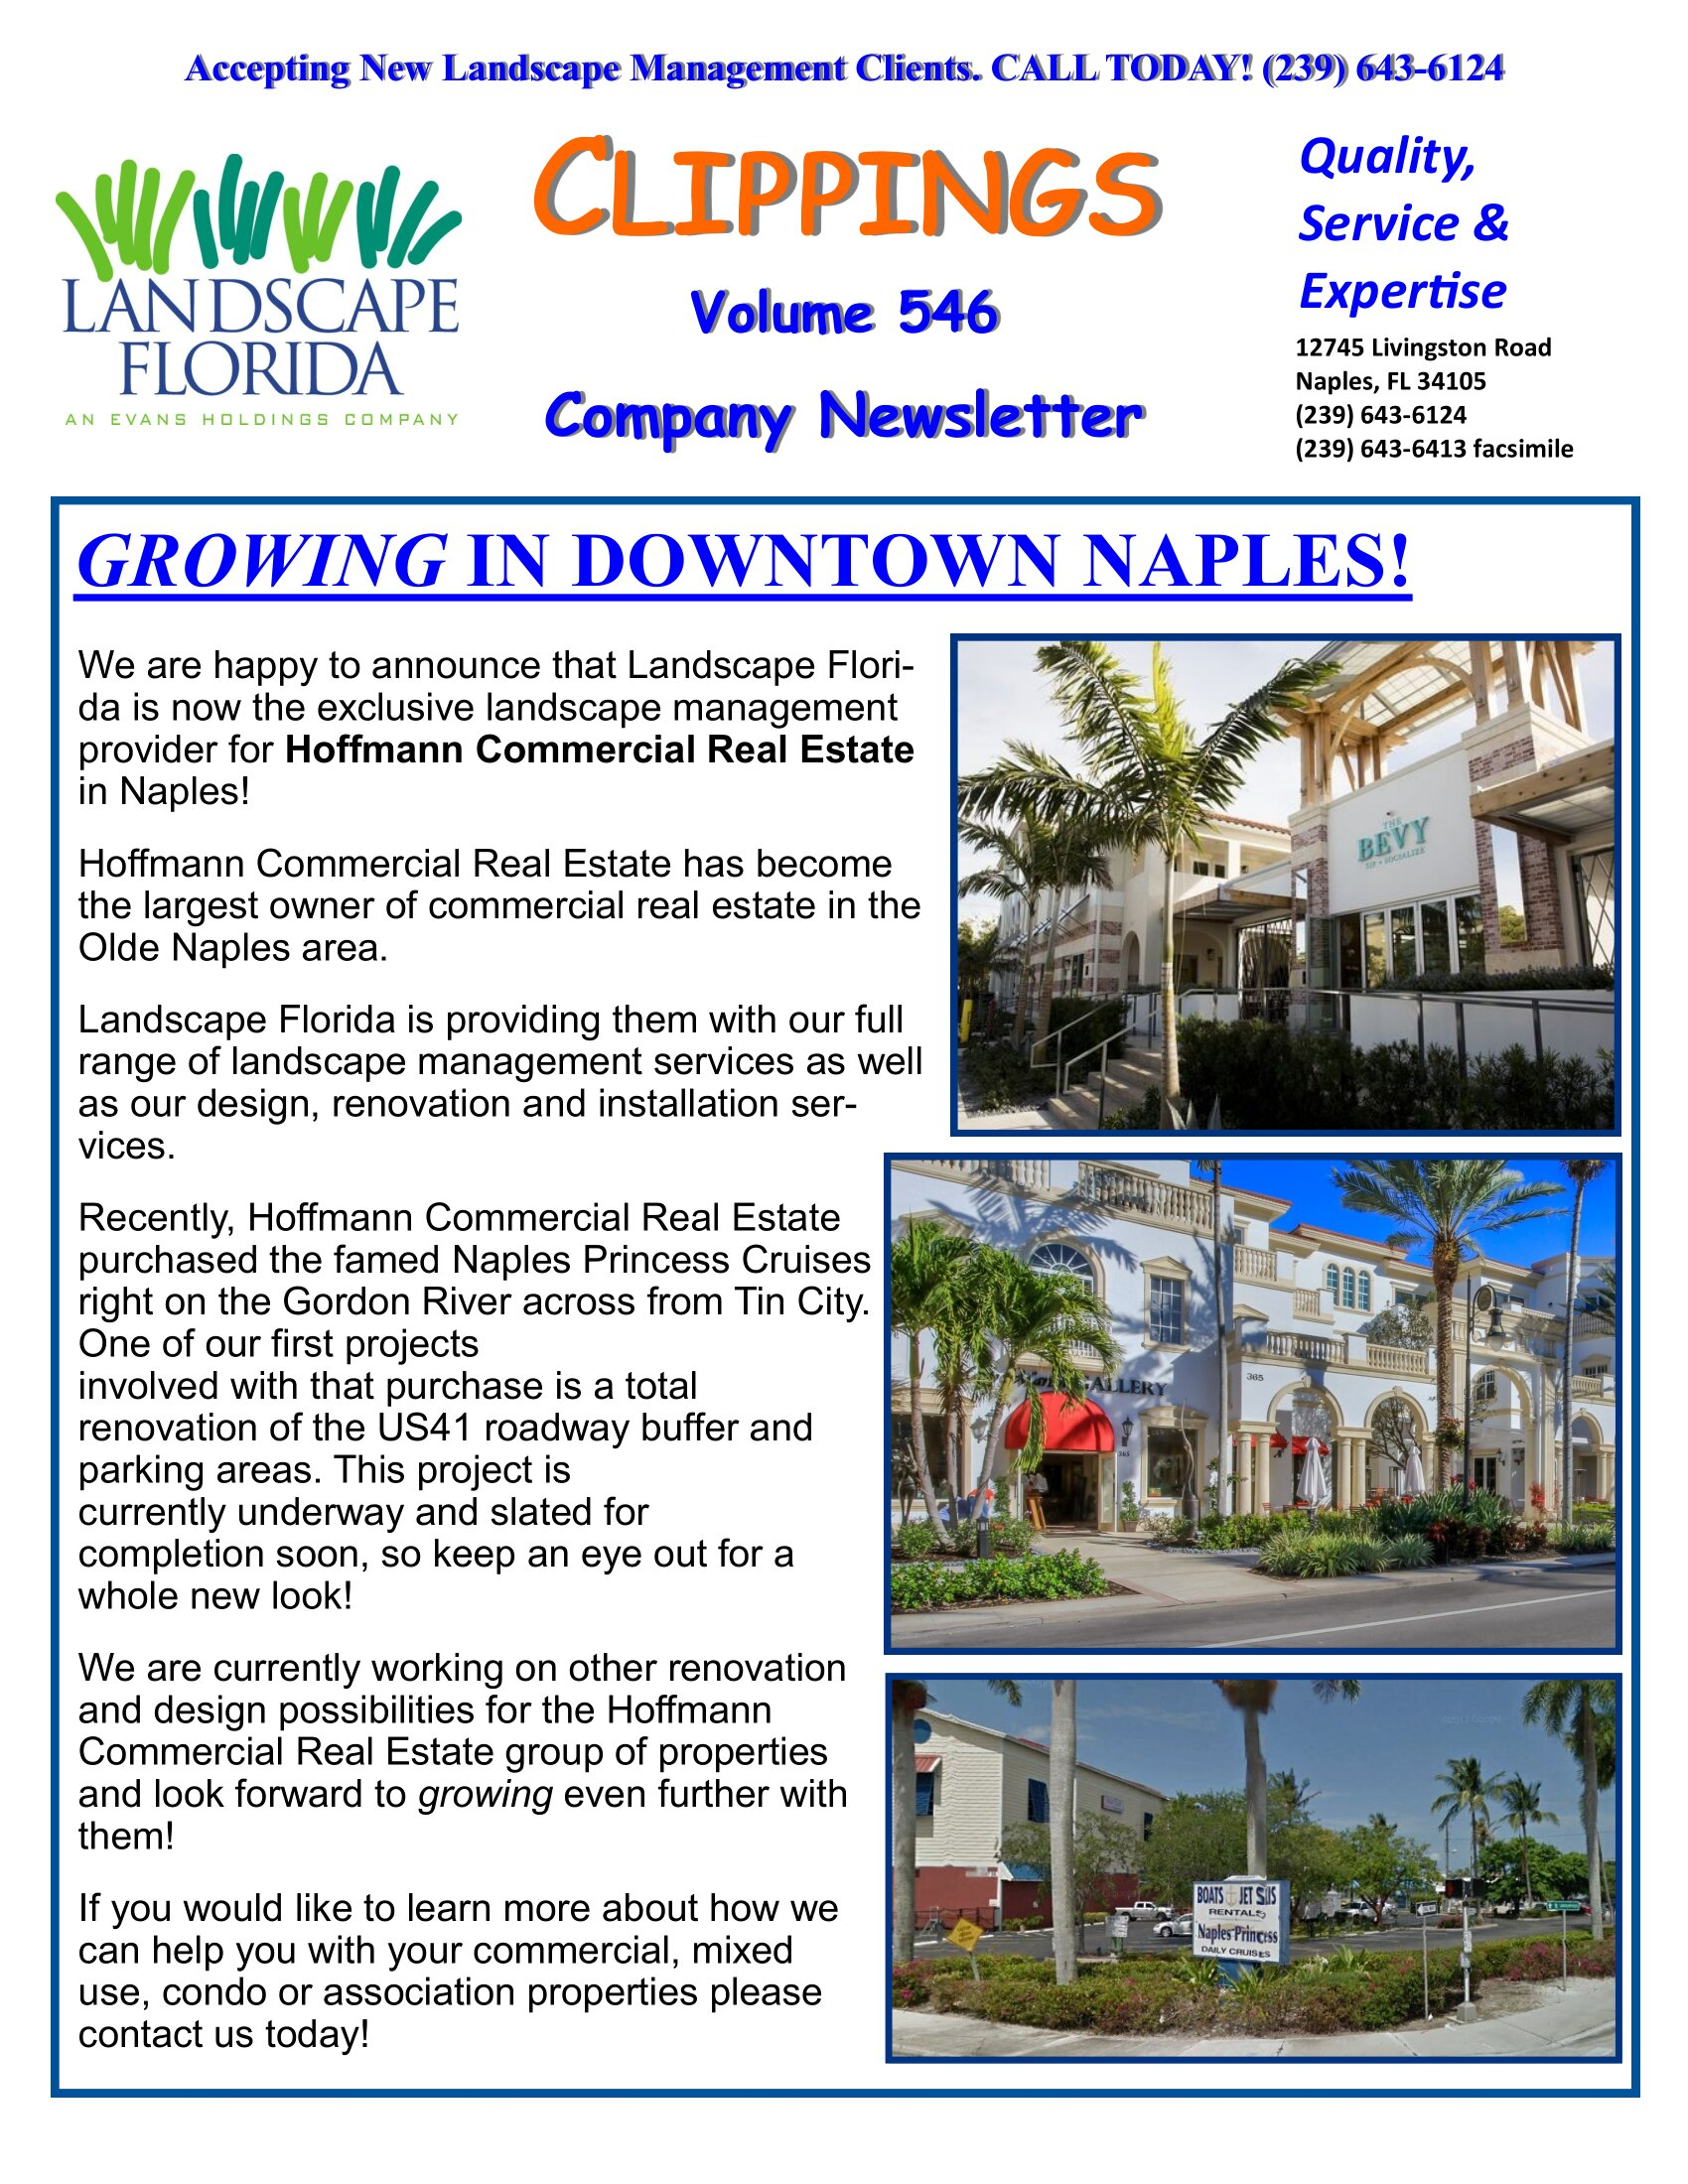 Landscape Florida Publication Clippings Volume 546 Company Newsletter | Southwest Florida Landscape Design and Maintenance